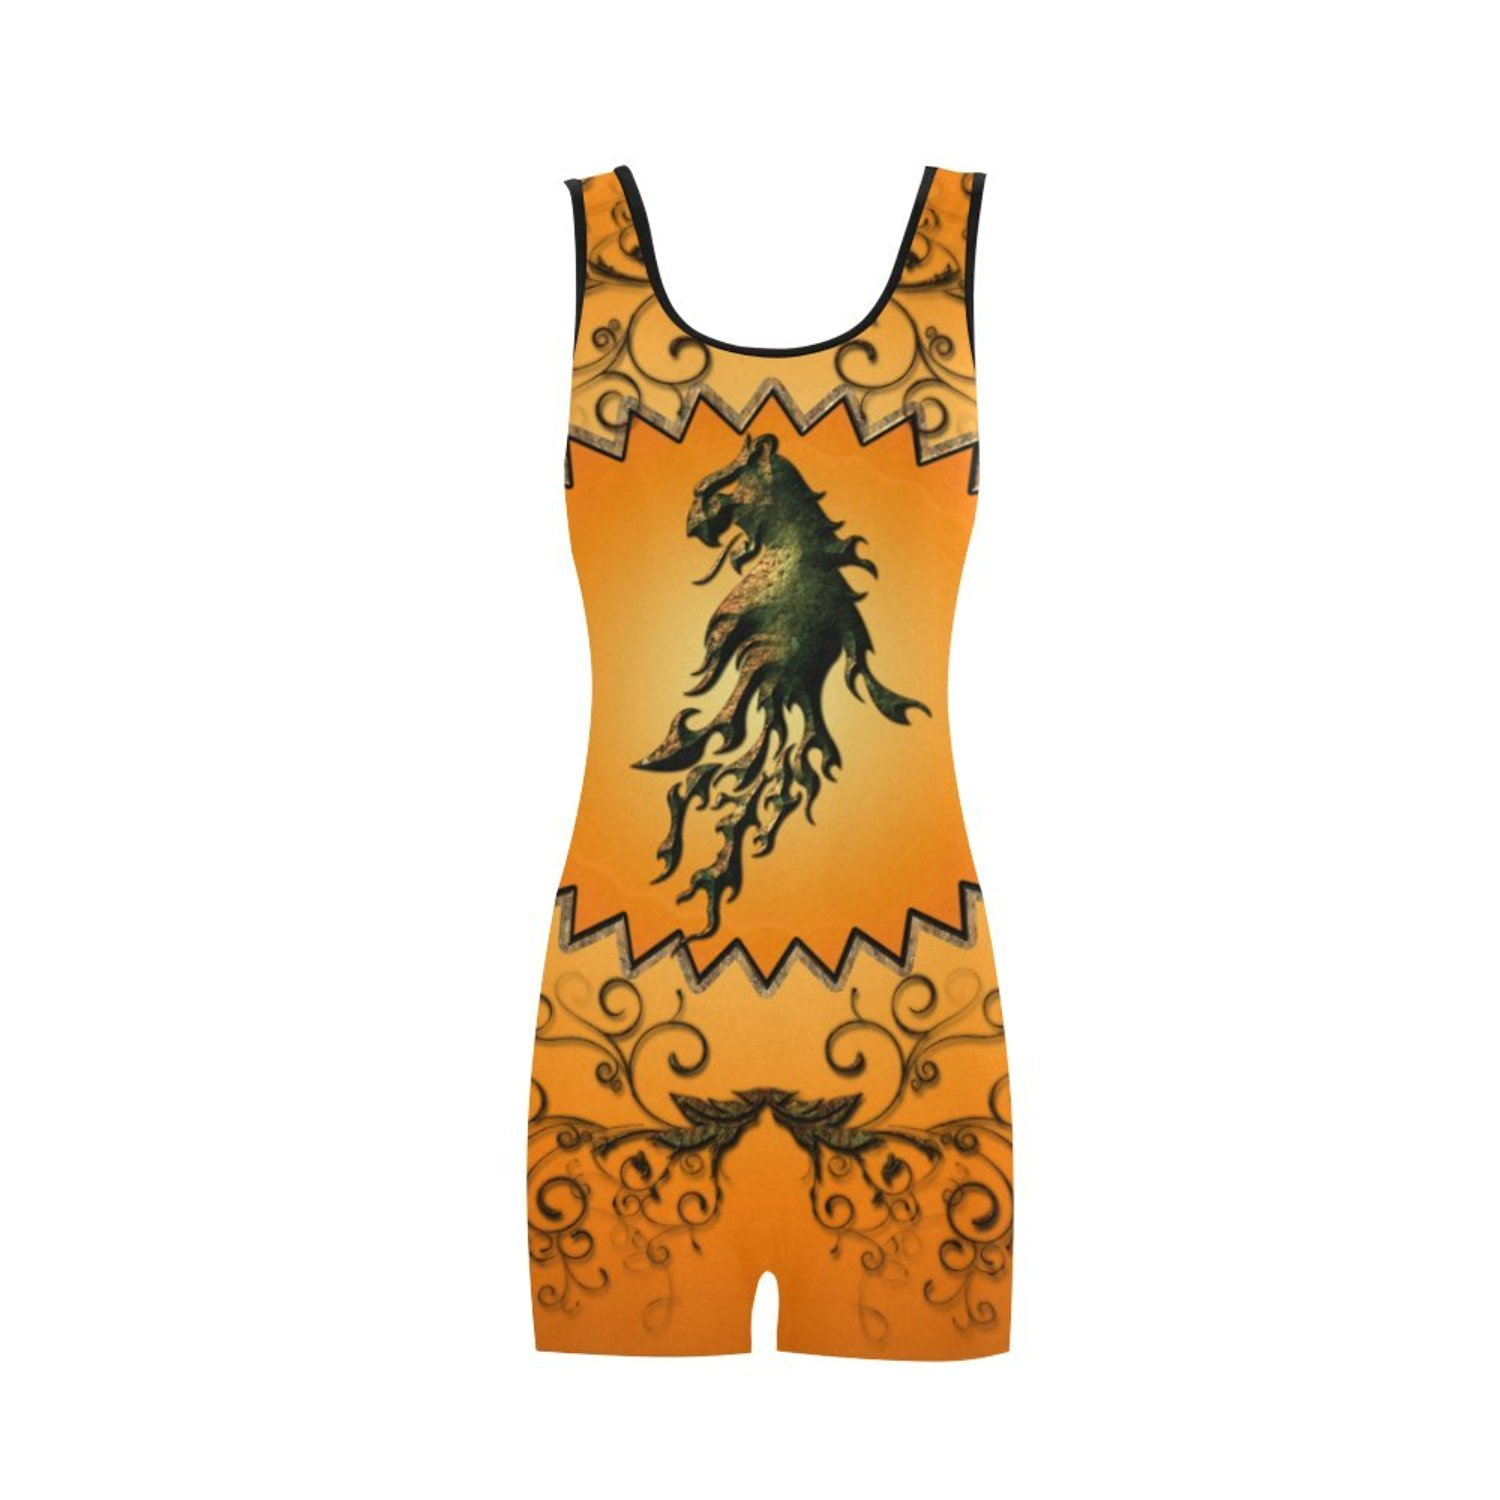 9f40557ffaed Get Quotations · Artsadd Lion With Flame Classic One Piece Swimwear Swimsuit